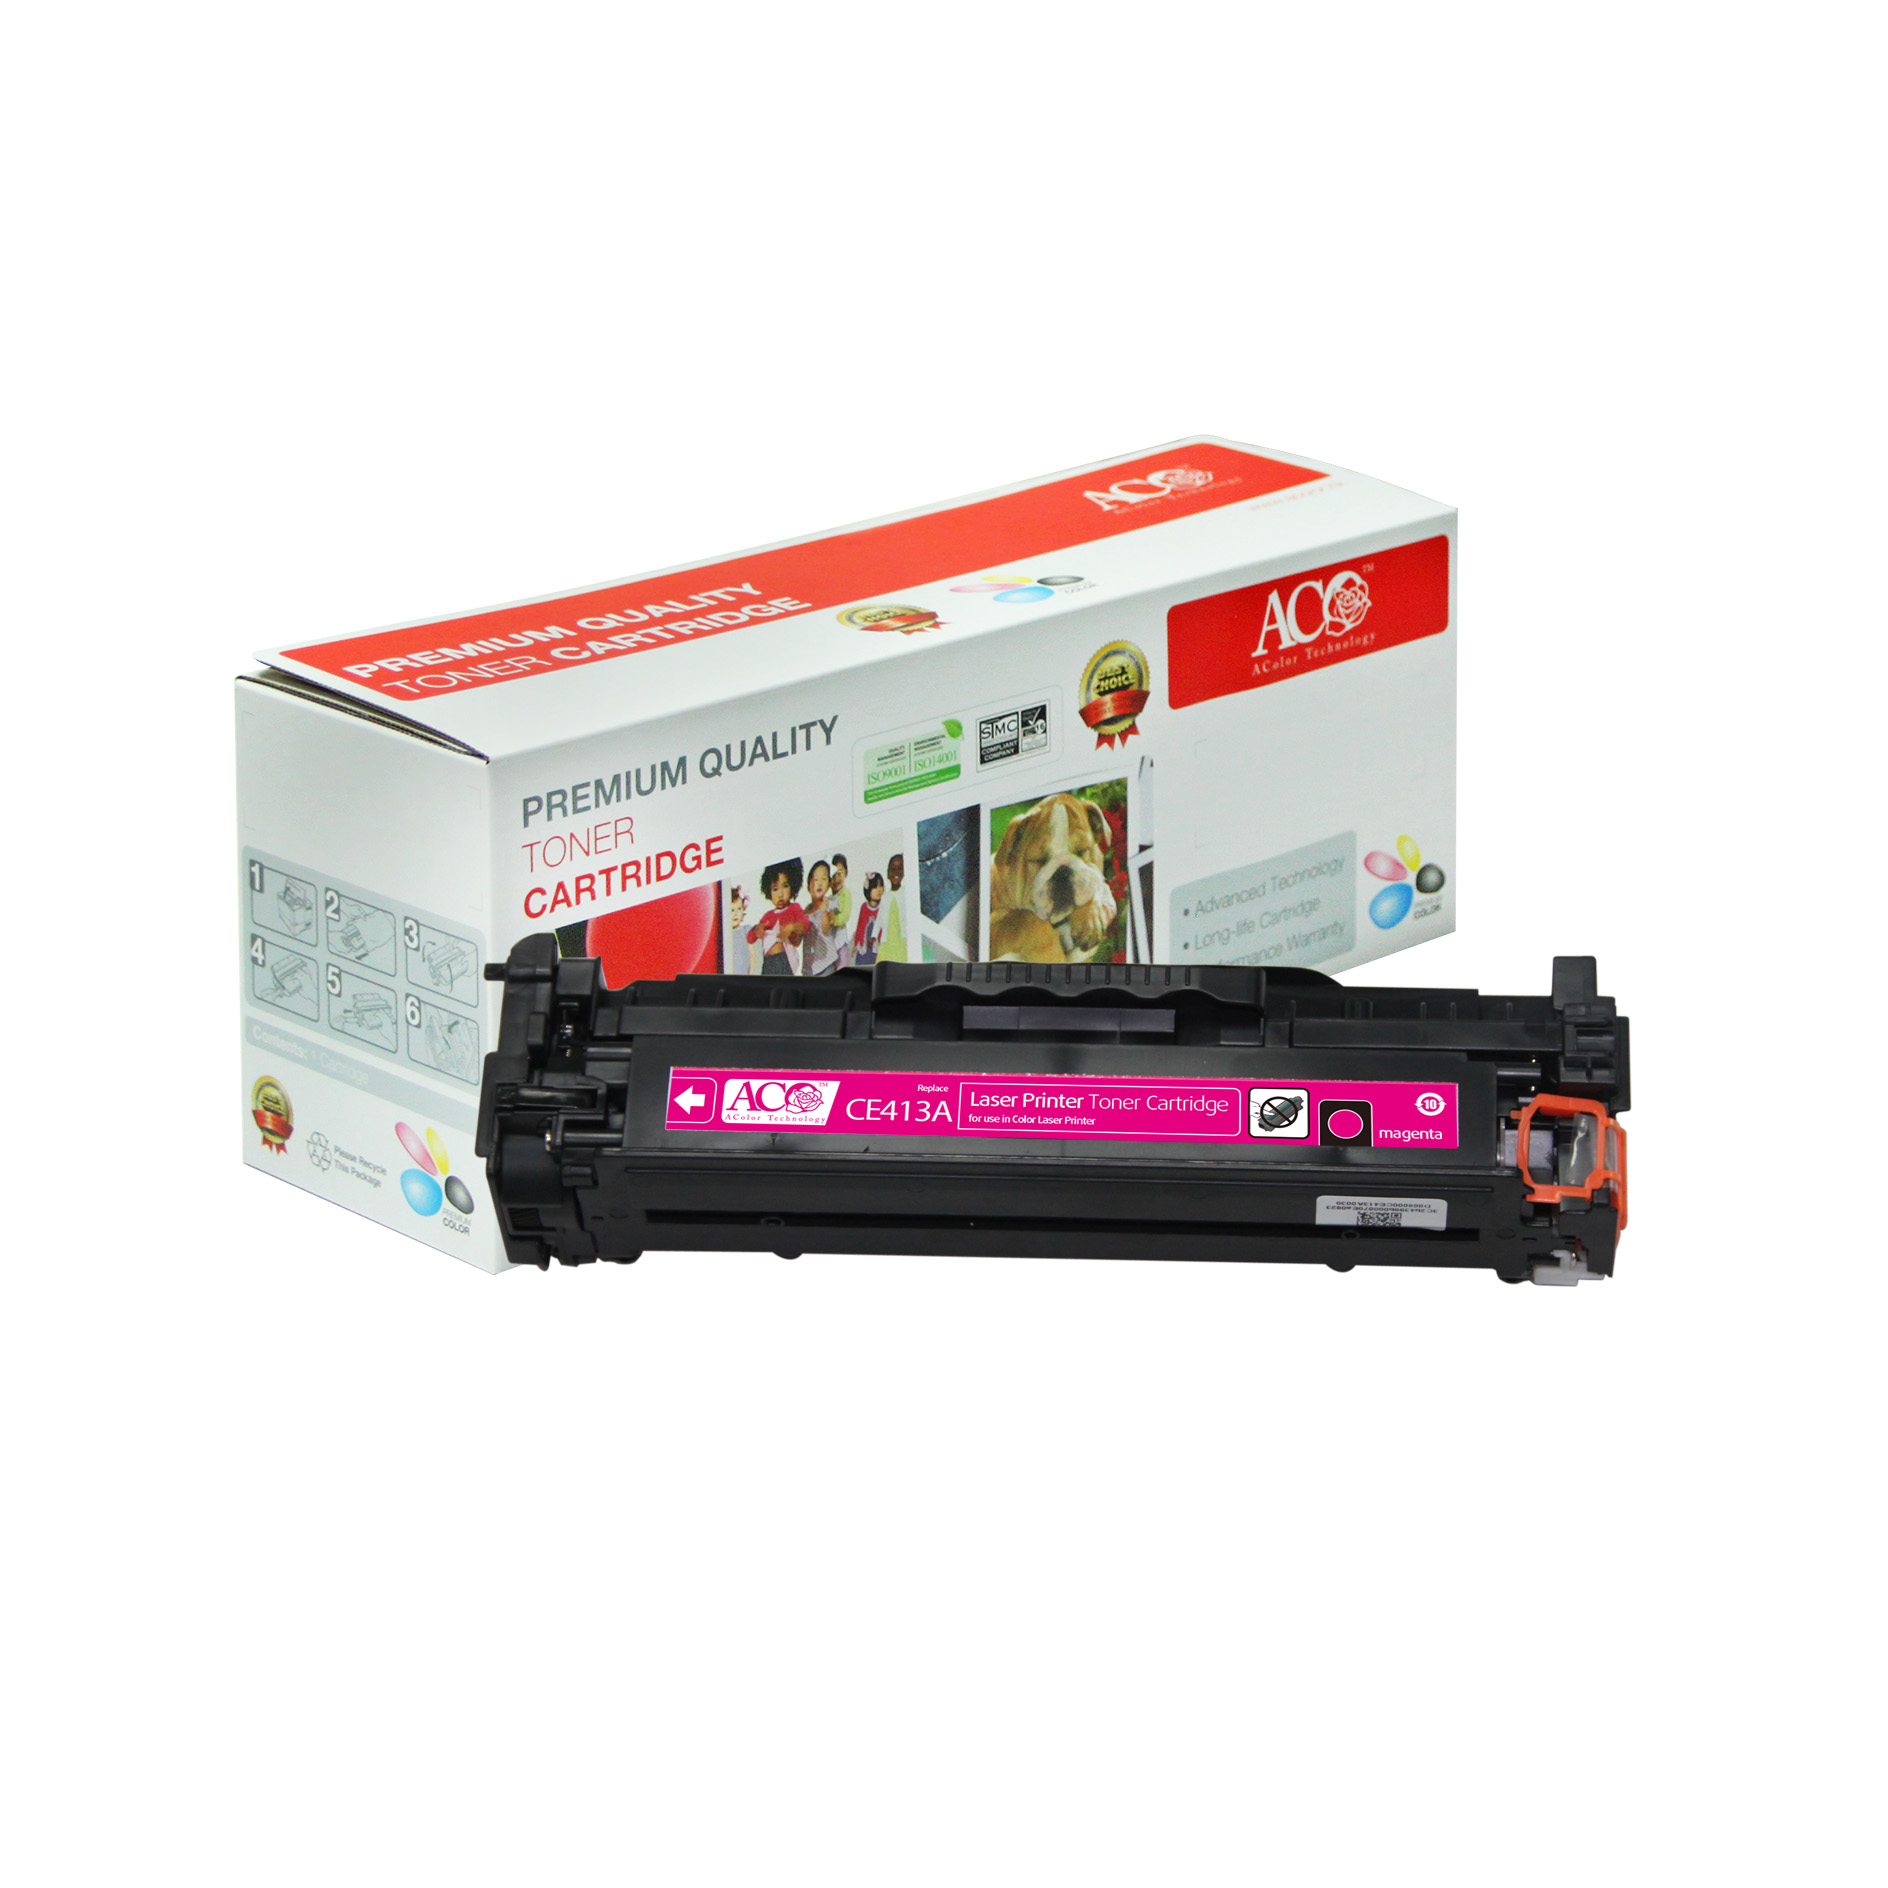 Compatible Color Toner Cartridge for HP CE410A CE411A CE412A CE413A(for HP LaserJet Pro 300 400 color M351 M375nw M451dn M451nw M451dw M475dw M475dn)